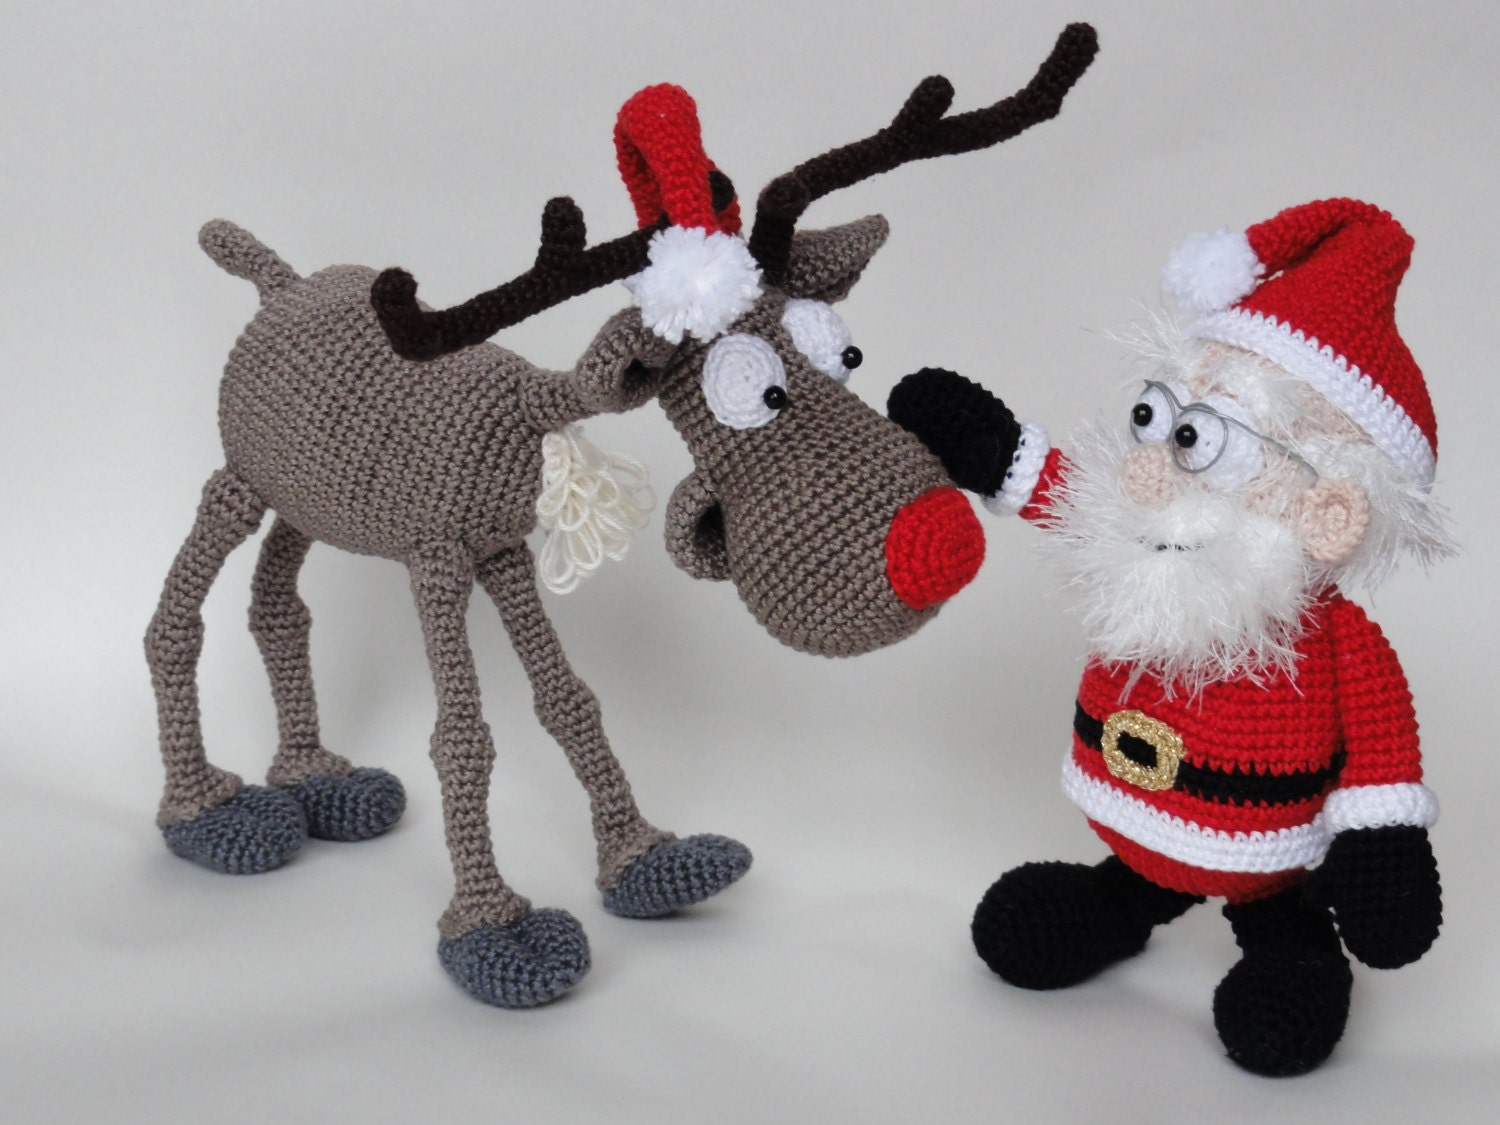 Amigurumi Crochet Pattern Set - Santa Claus and Rudolf the Reindeer ...